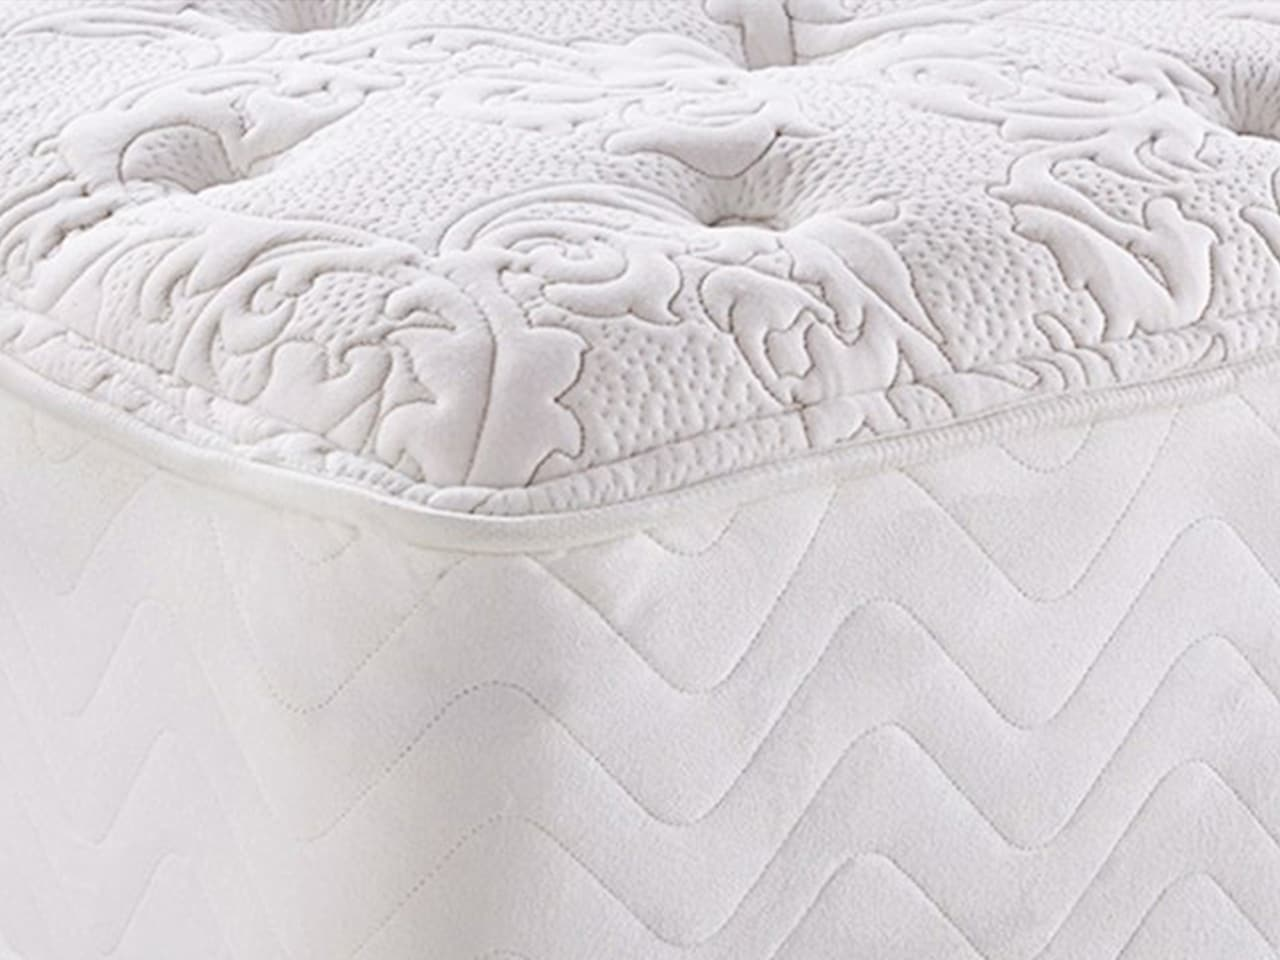 Shop Mattresses and Box Springs